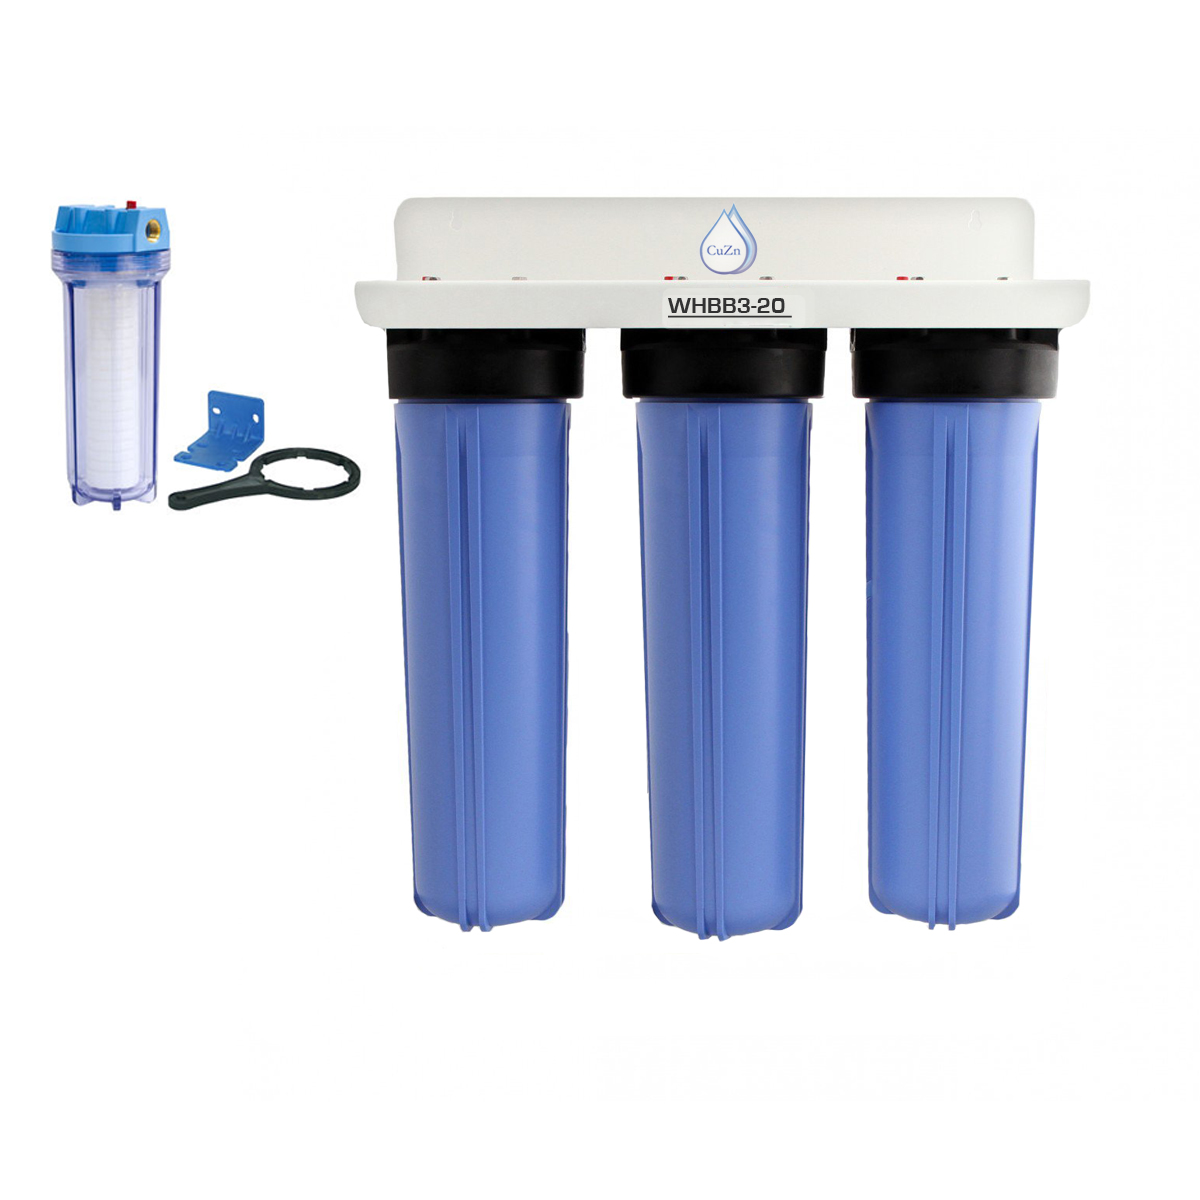 Diy well water treatment systems diy do it your self for Liquid template filters